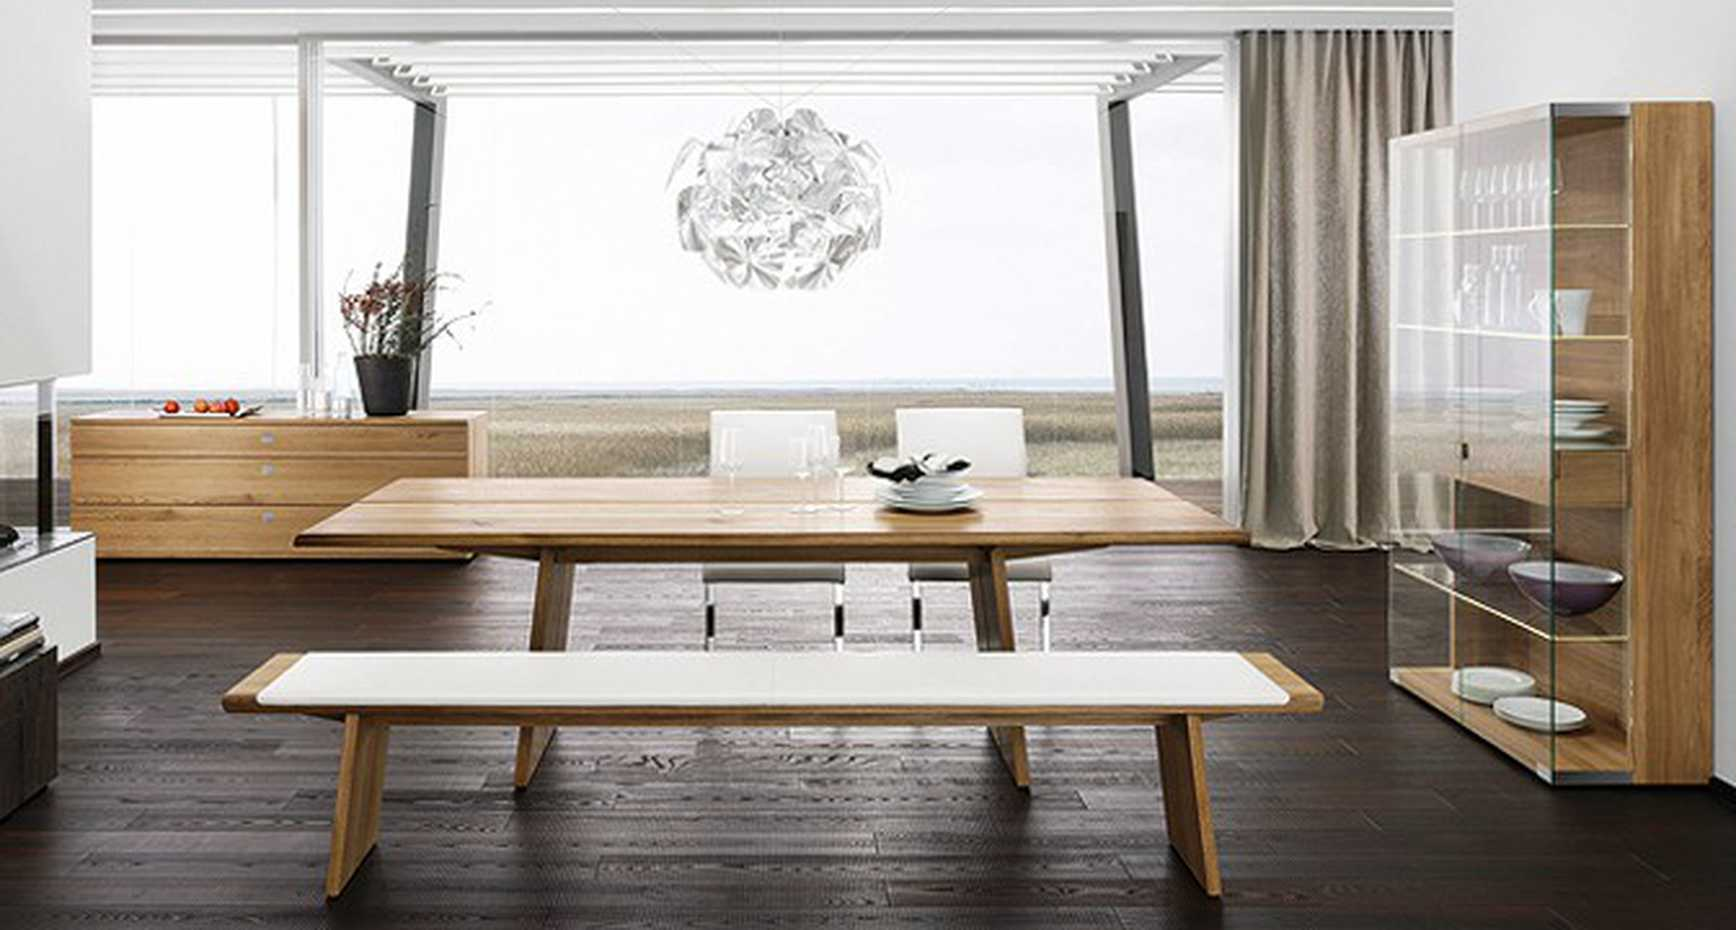 Nox Table by Team 7 product image 4